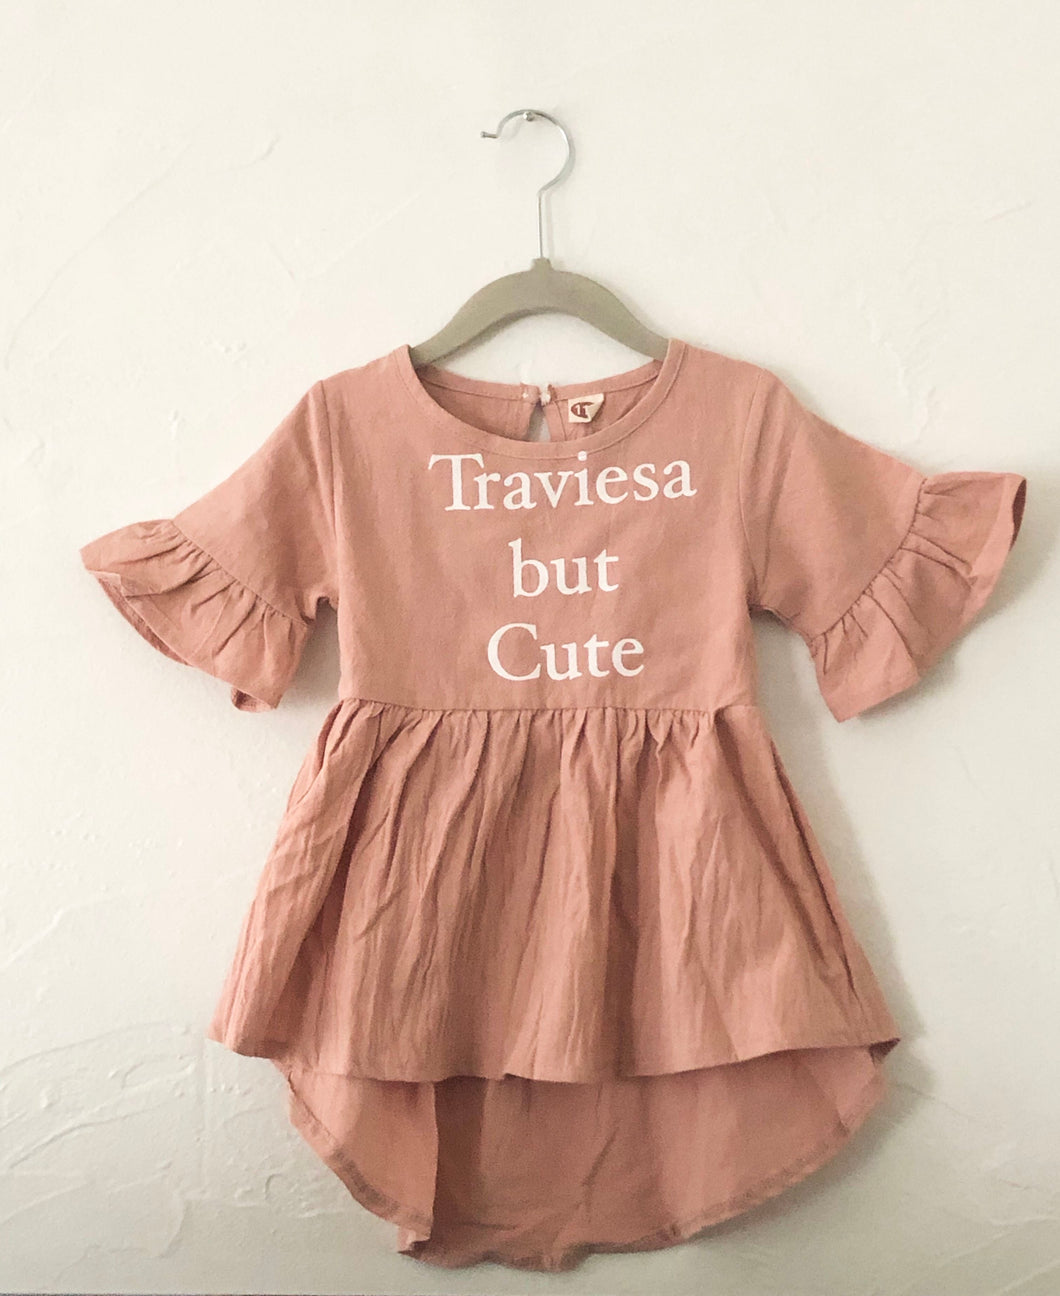 Traviesa Shirt